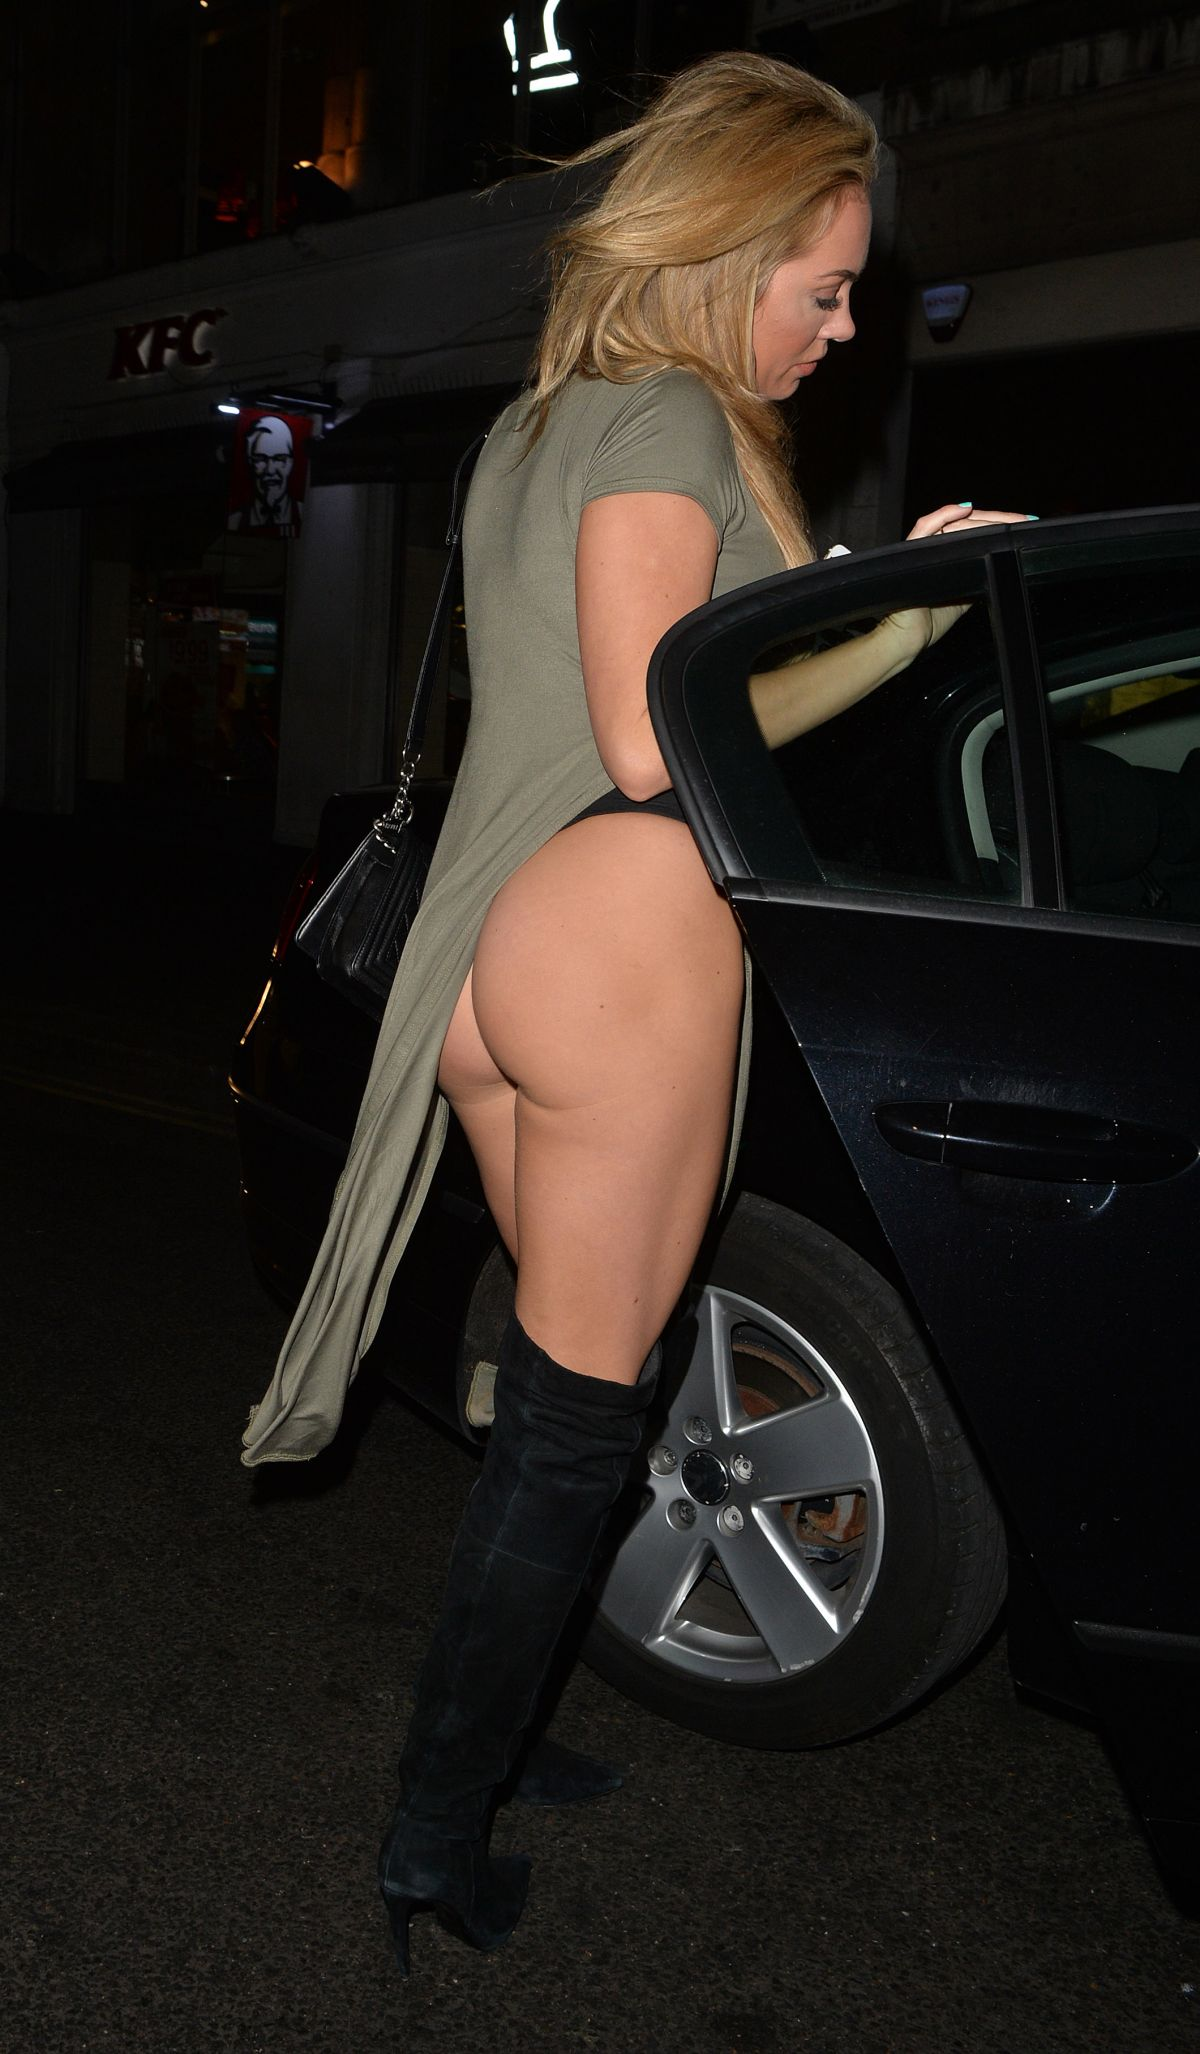 Leaked Aisleyne Horgan-Wallace nudes (54 foto and video), Ass, Cleavage, Instagram, legs 2018